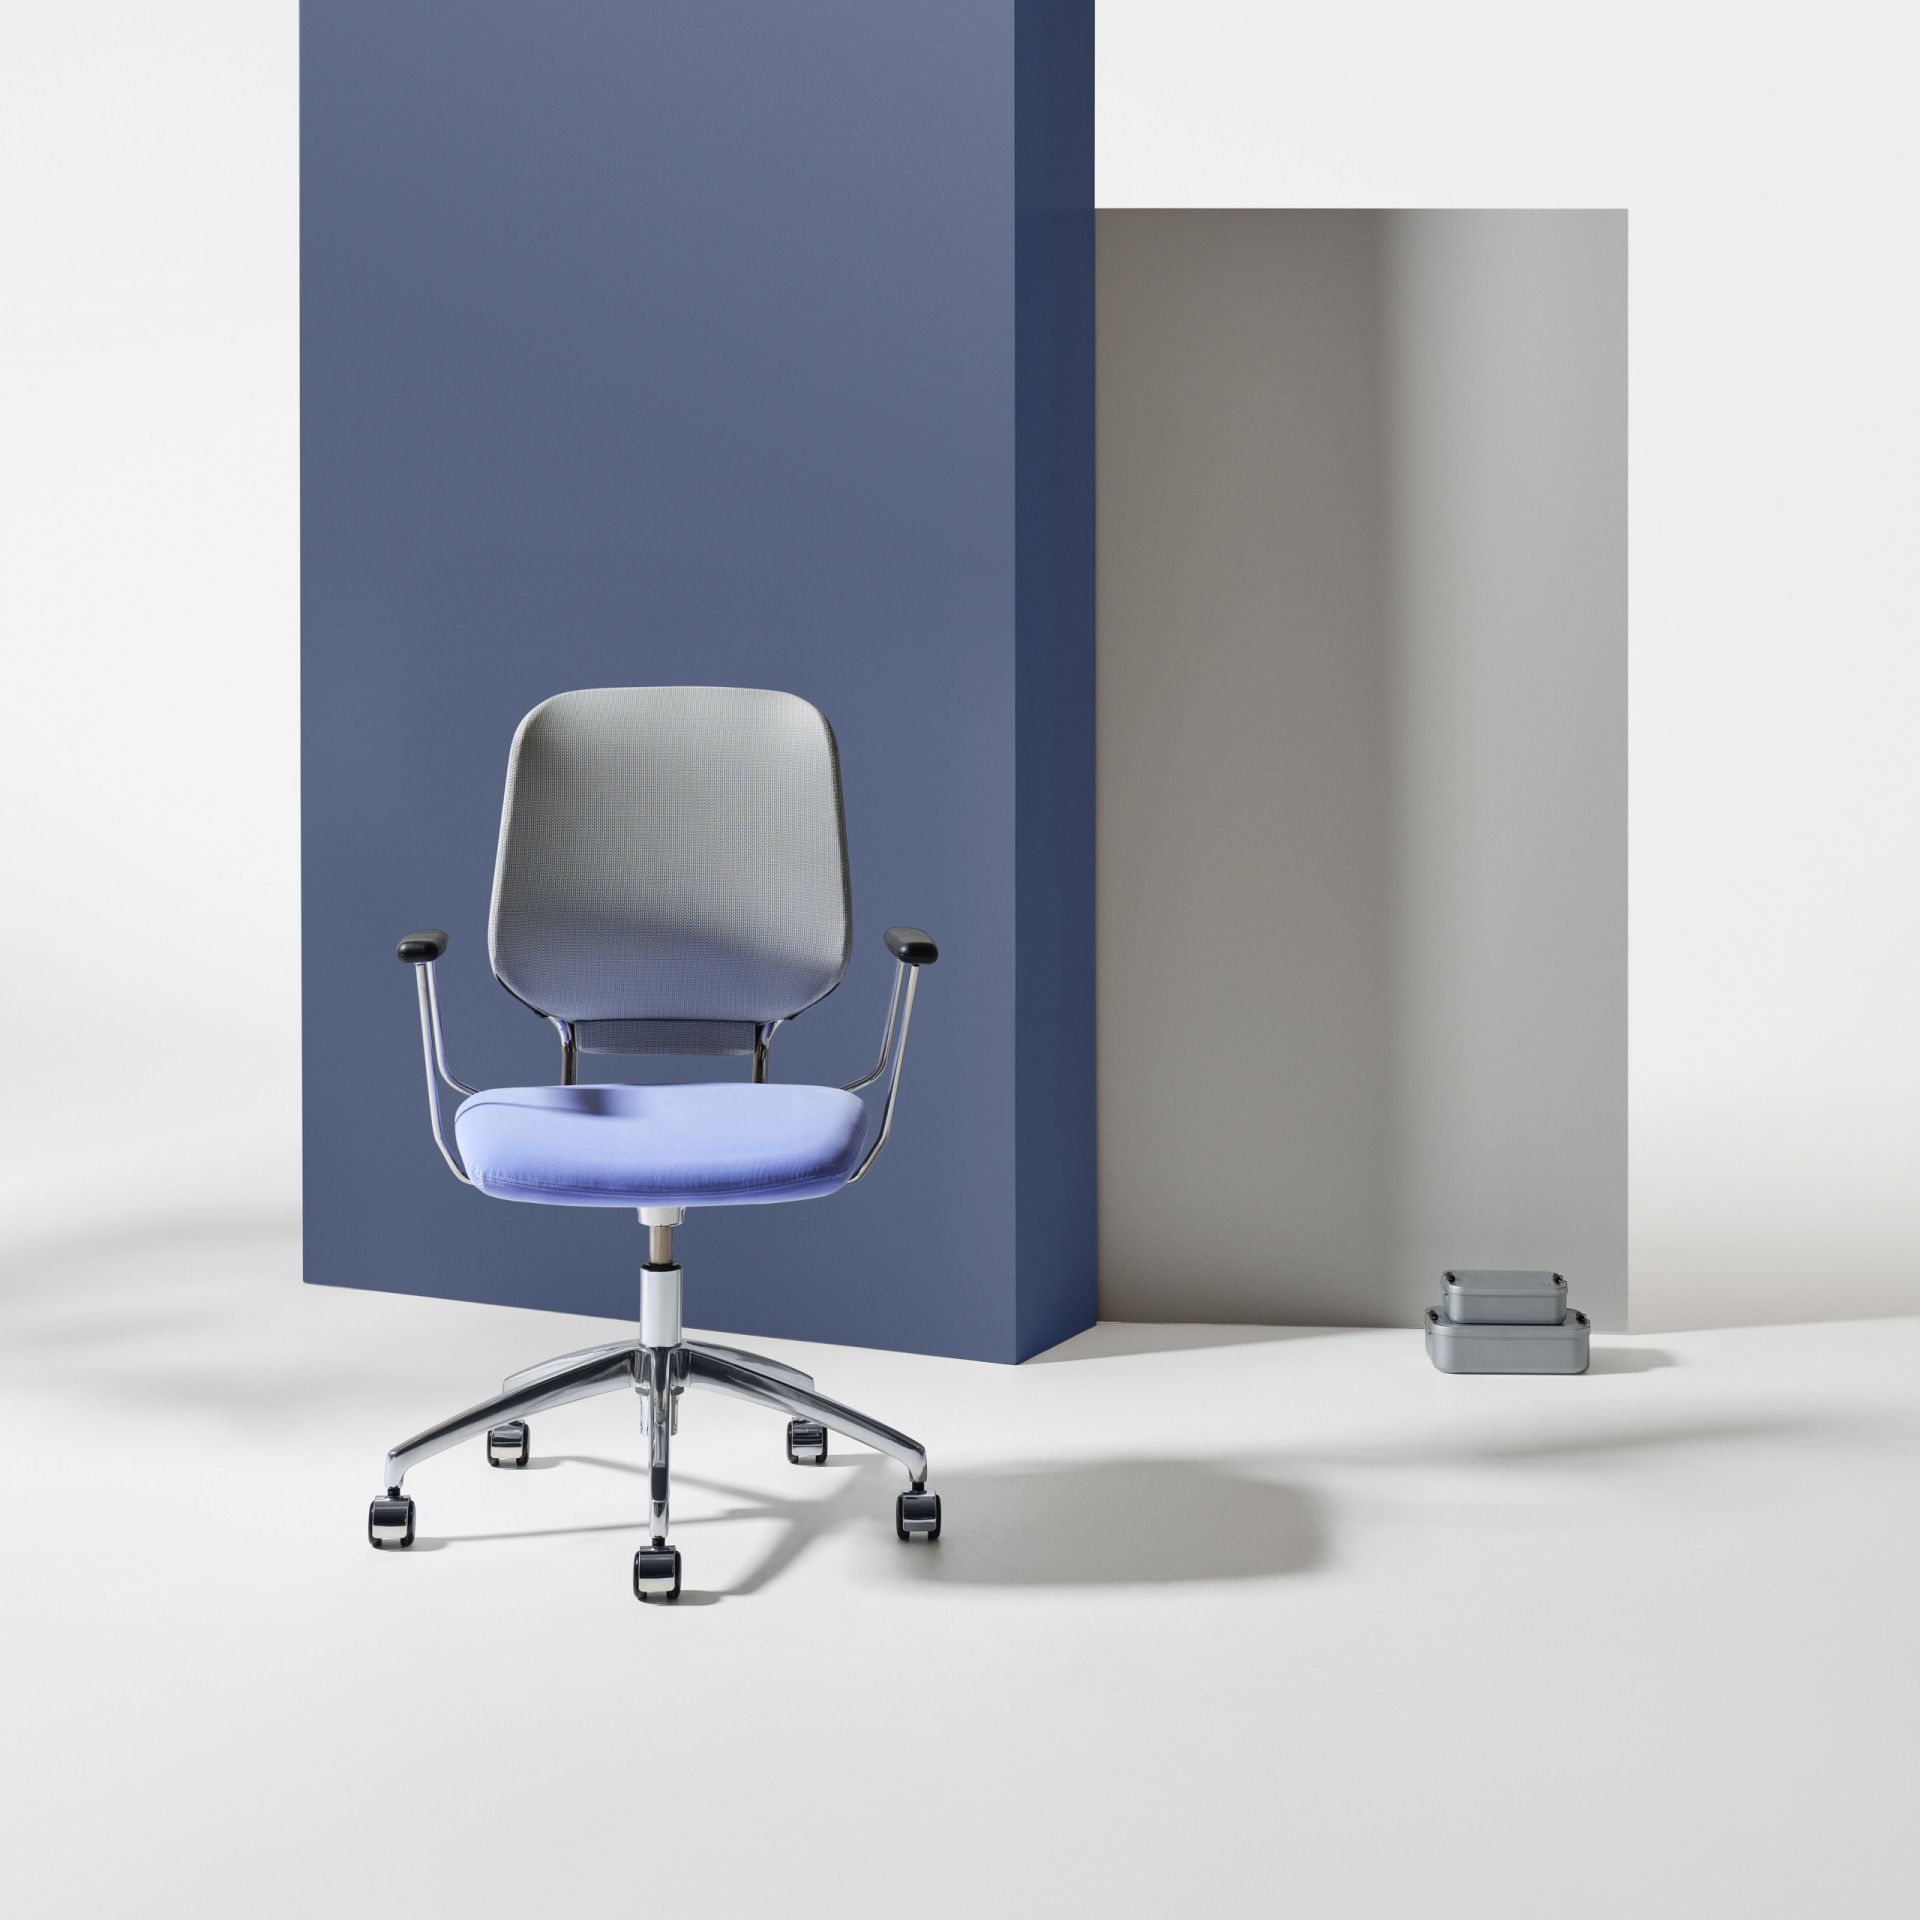 Savo Invite Invite meeting chair product image 3